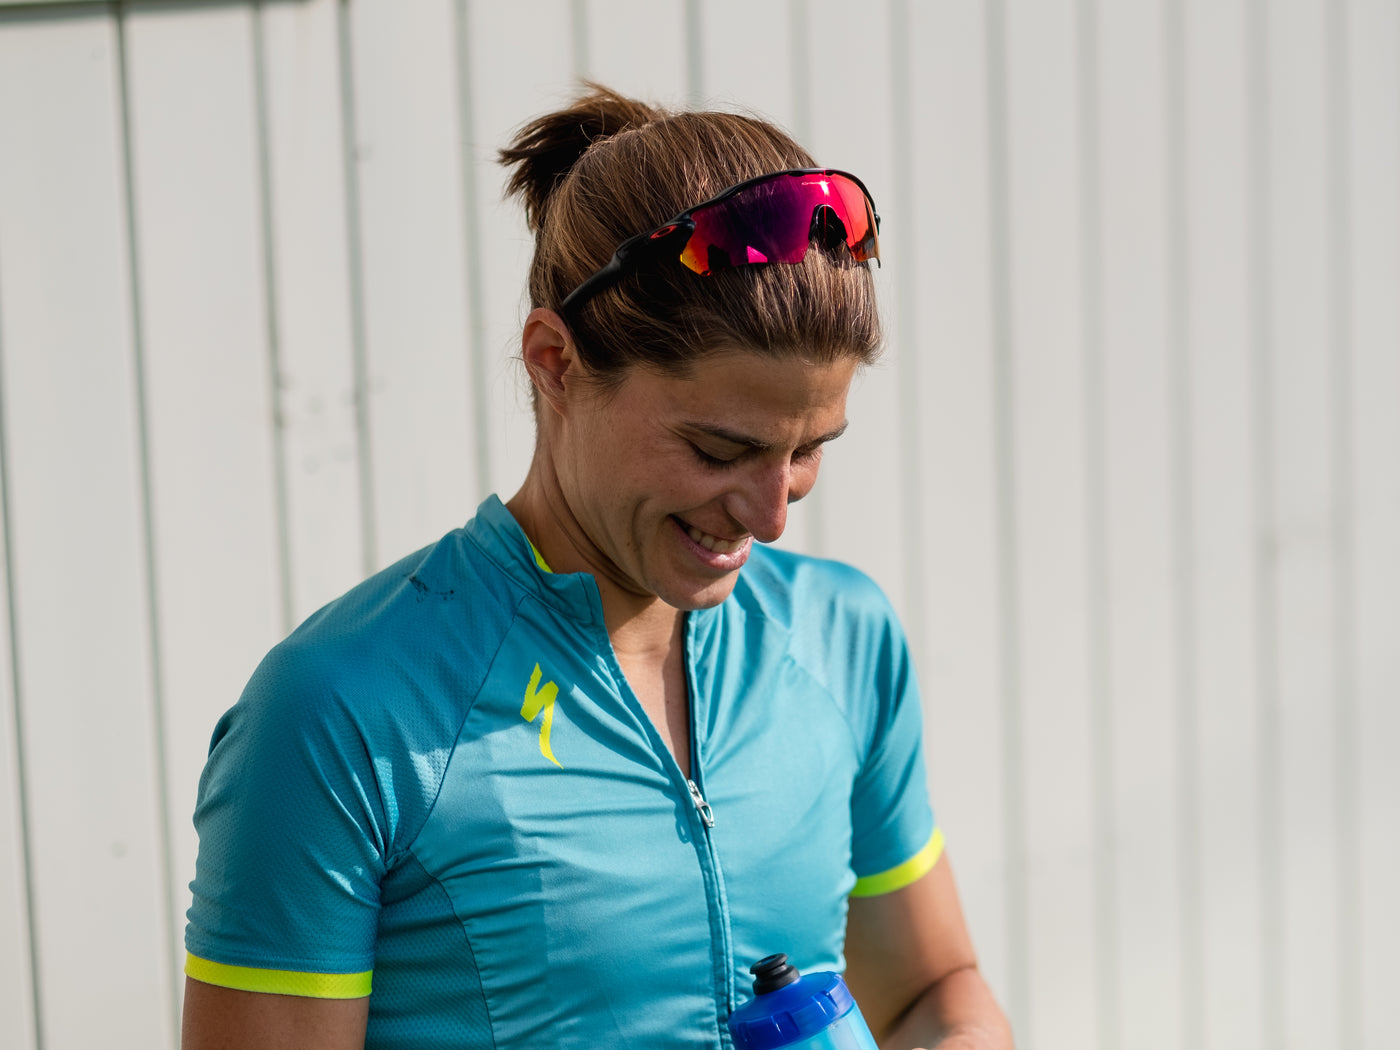 Pro Triathlete, Sarah True holding a nuun hydration bottle